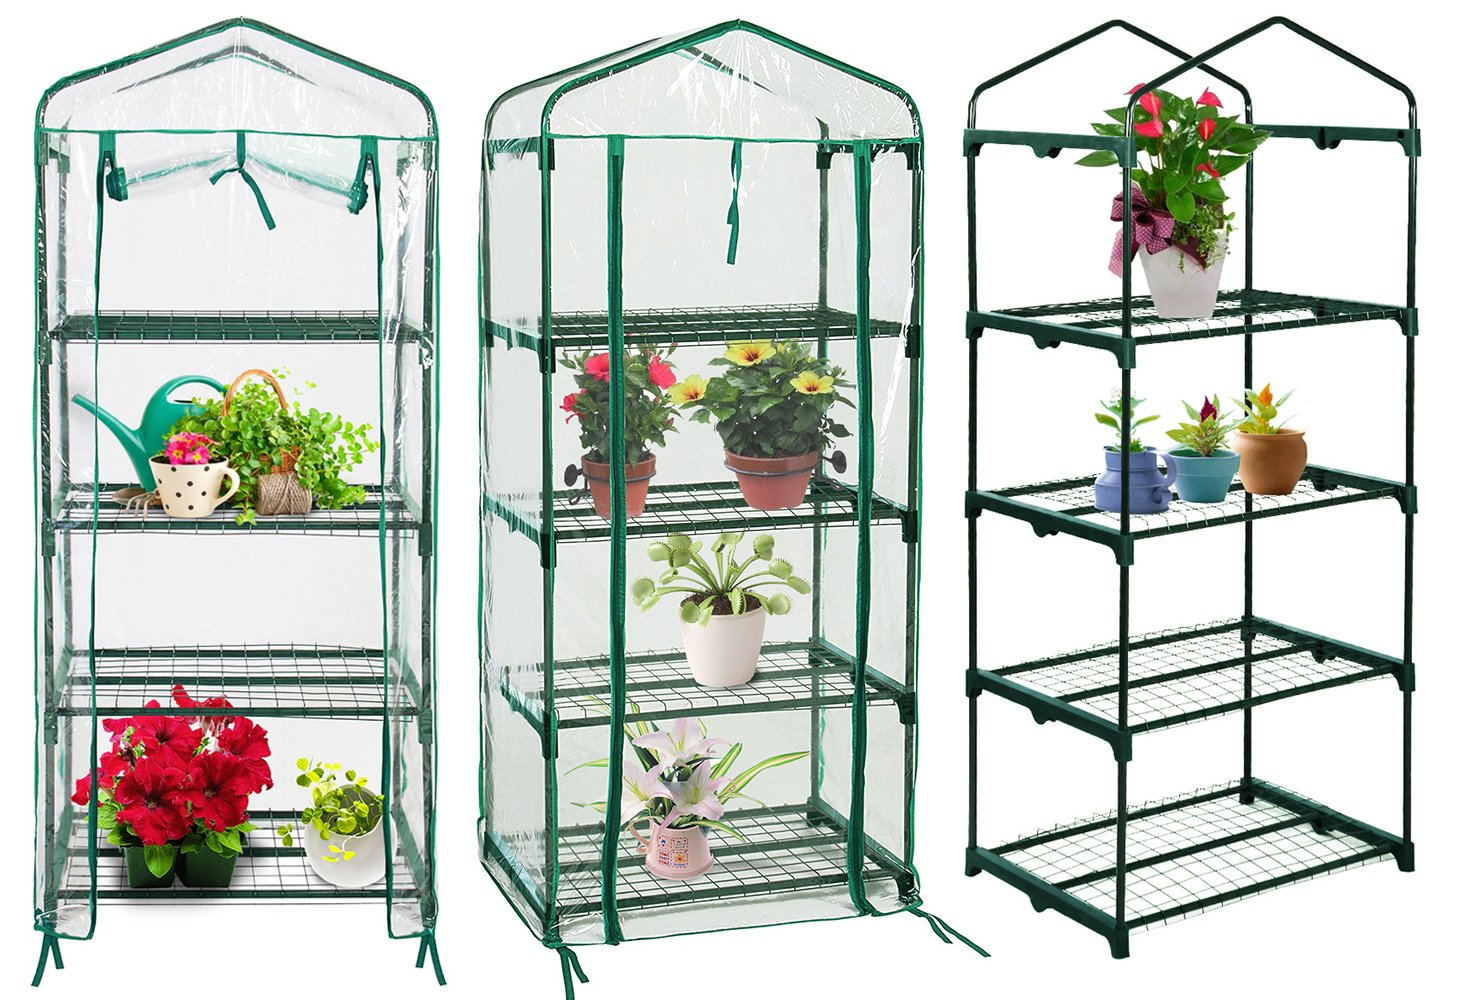 Quictent Hot 4 tier Mini Portable Green Hot Seeds House Indoor Outdoor w/Shelves Greenhouse by Quictent